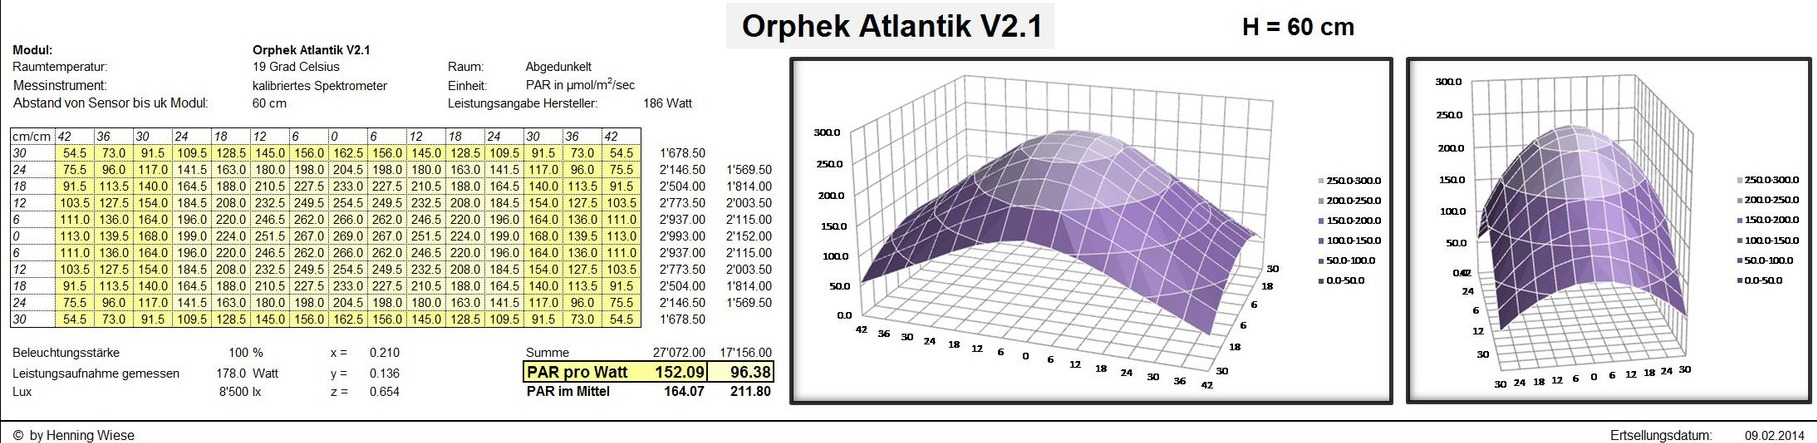 Orphek Atlantik V2.1 LED תאורה הקבוע-PAR MAP-PAR לואט